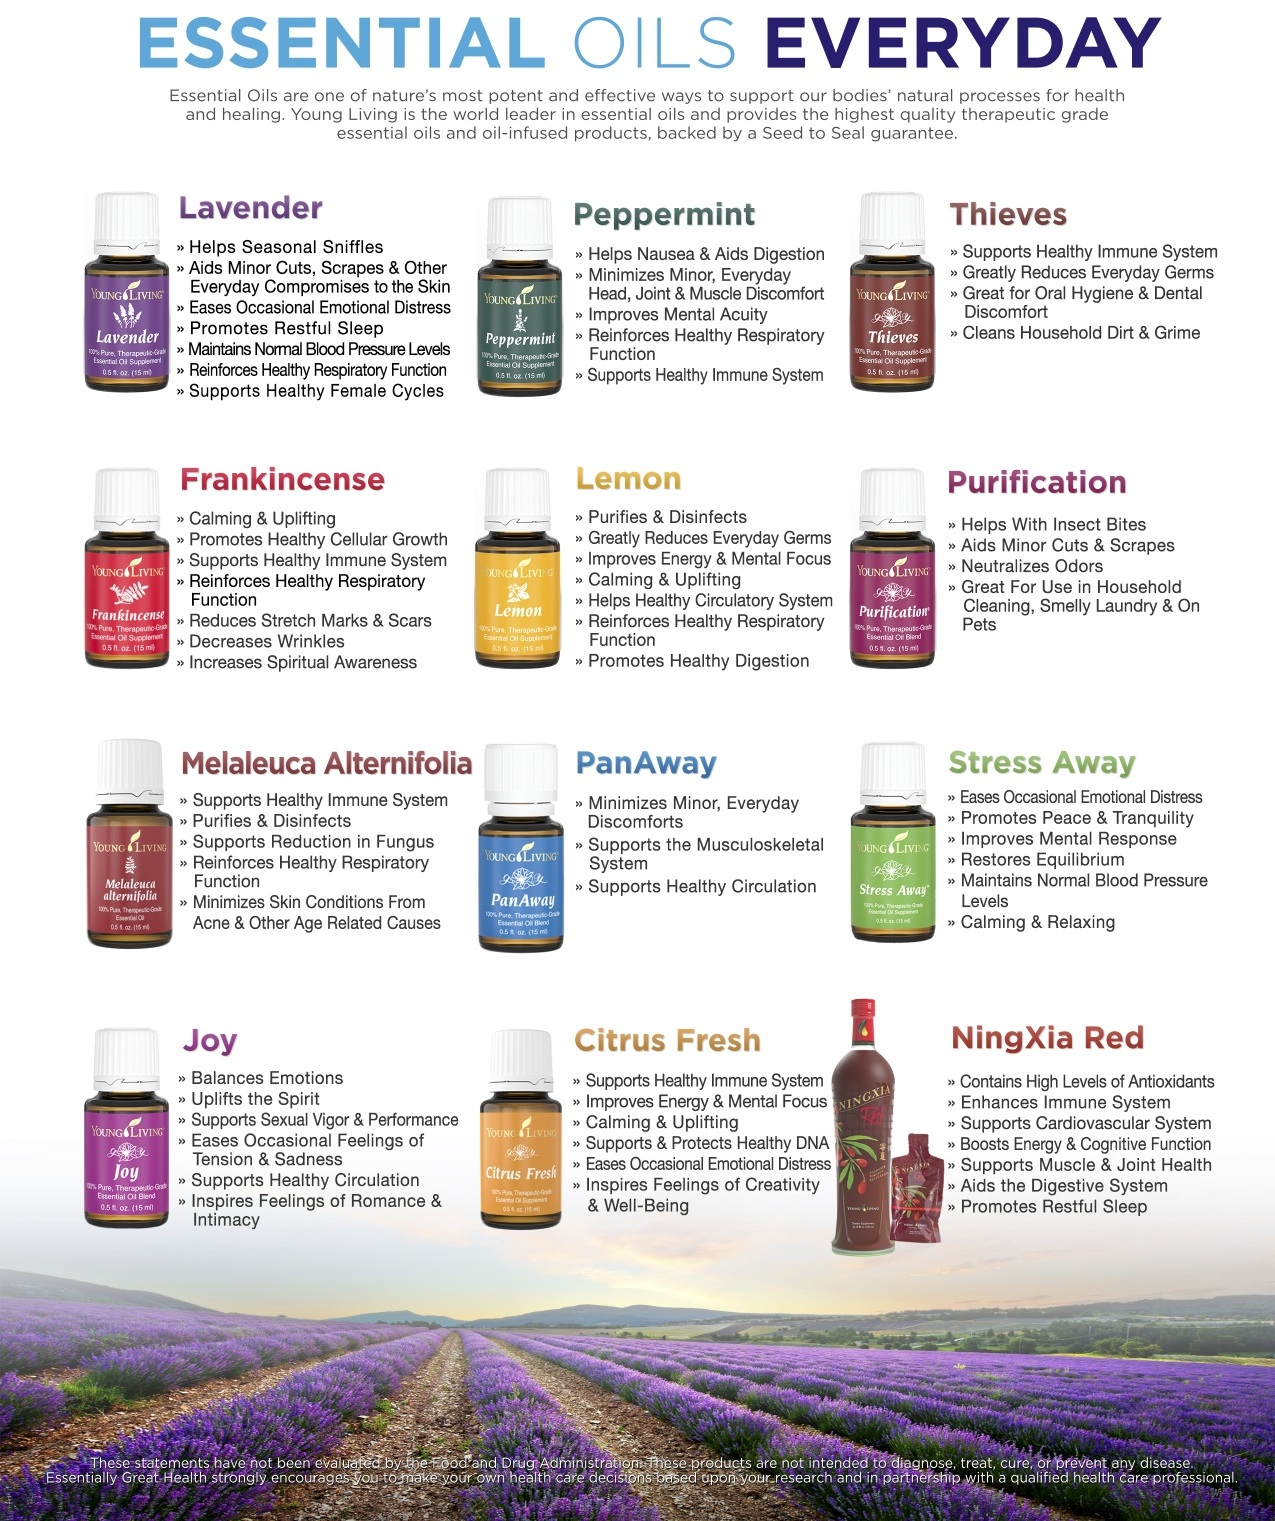 essential oils holistic health herbalist rh holistichealthherbalist com guide to essential oils diffuser guide to essential oils used in diffuser